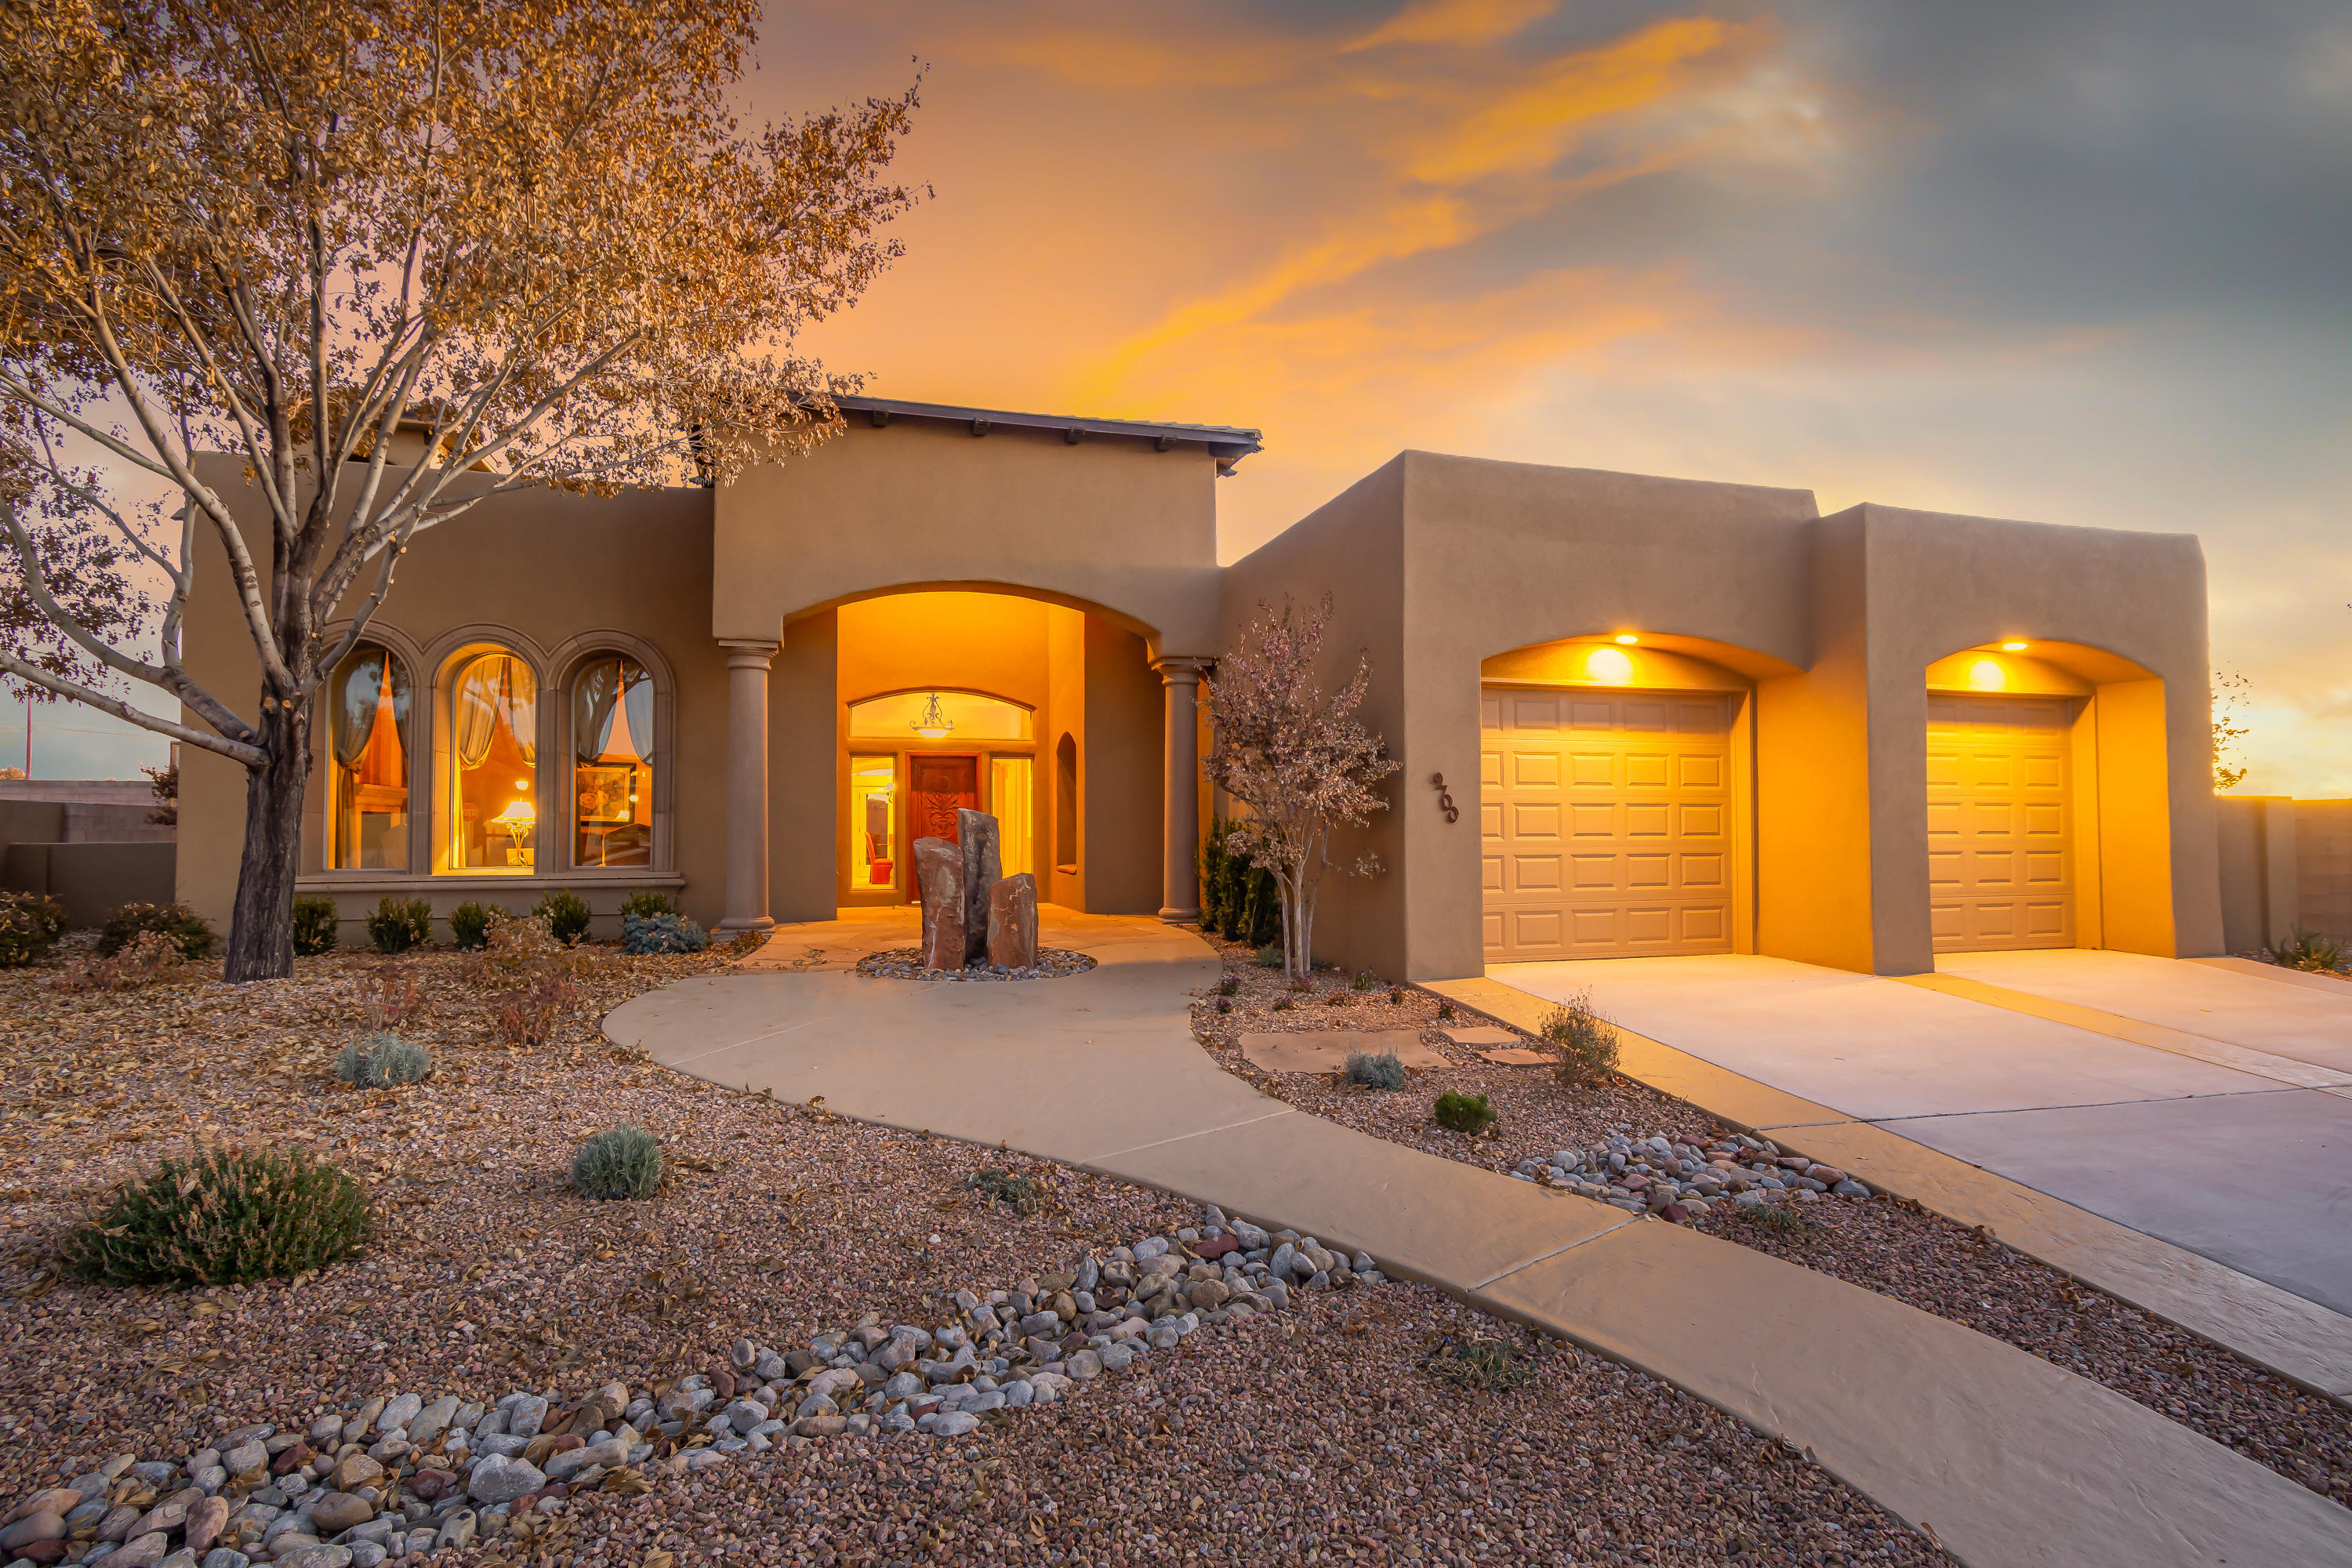 9700 SAND VERBENA Trail, Albuquerque NM 87122